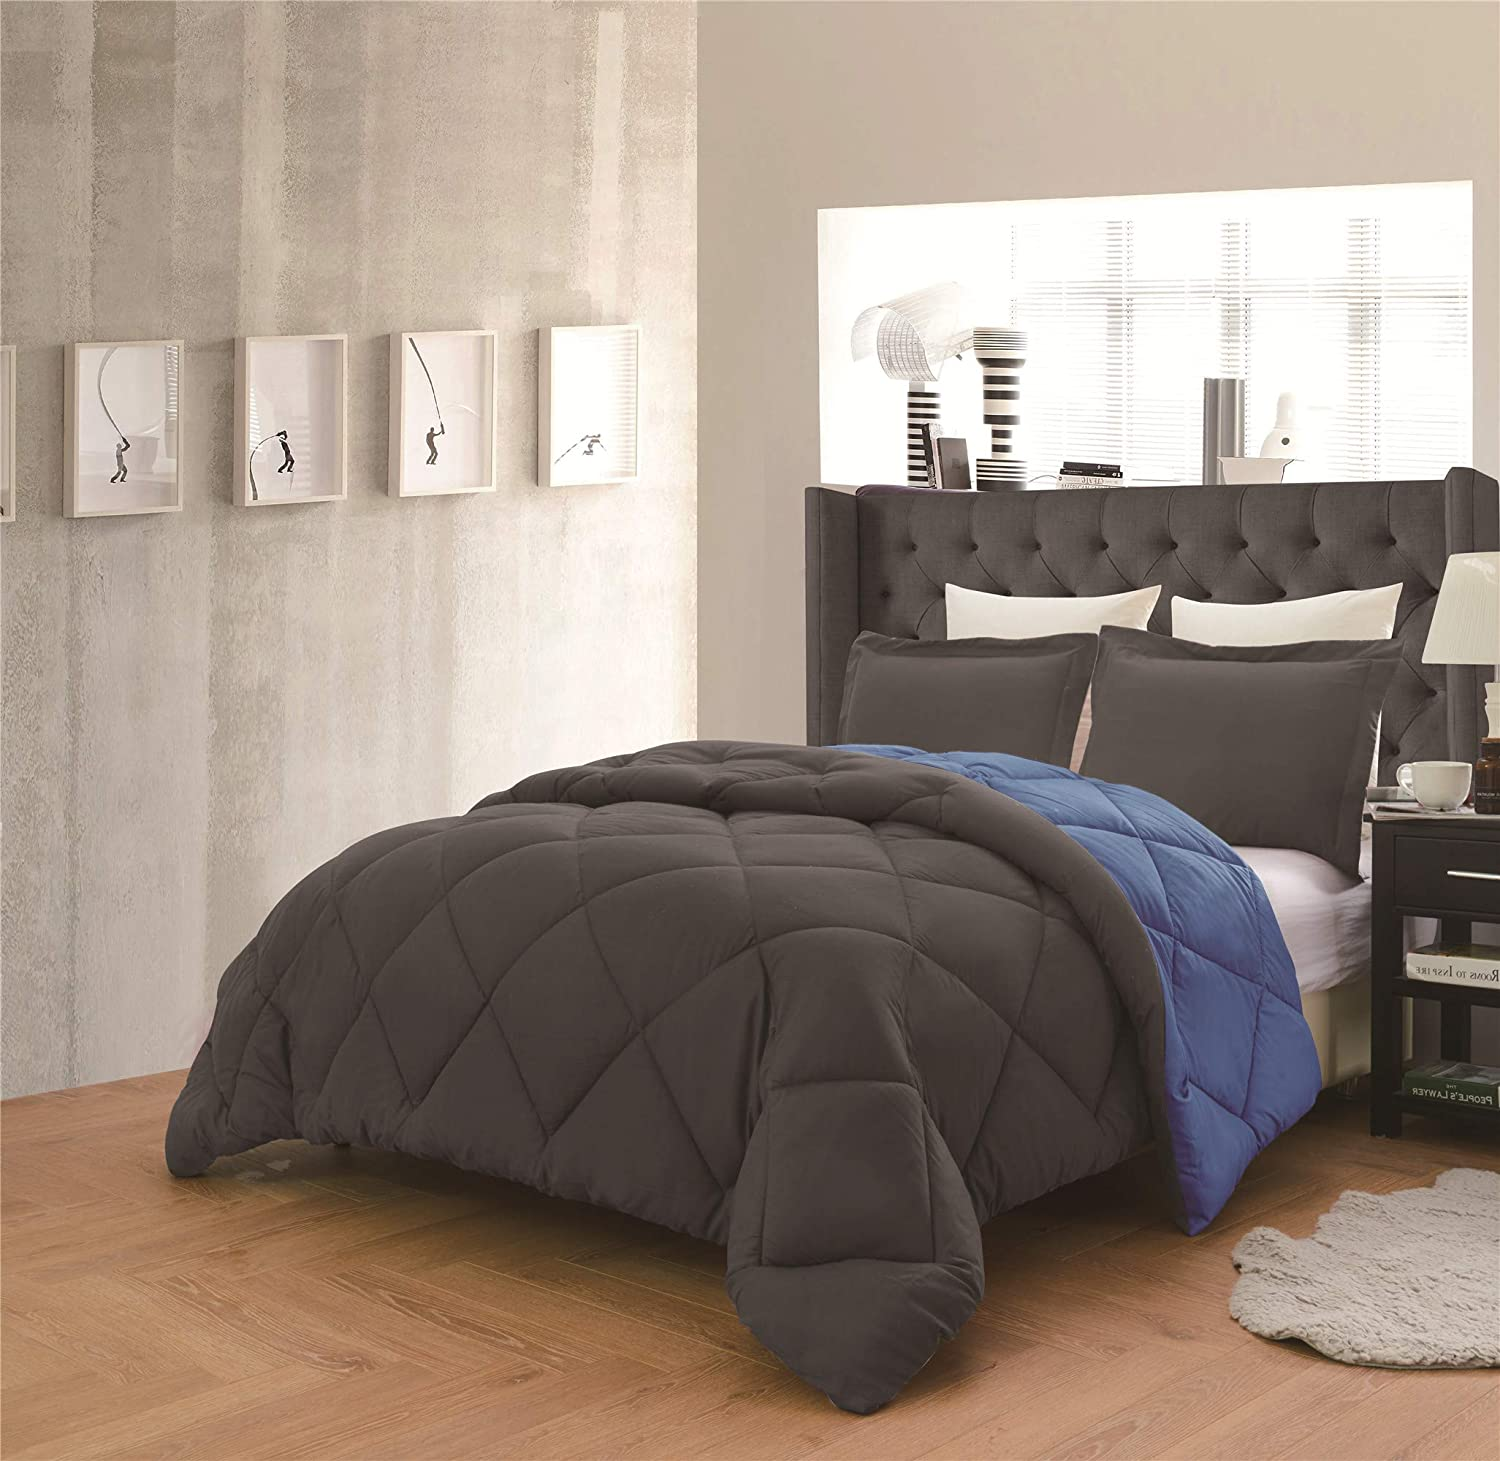 Dayton 3-Piece Reversible Down Alternative Solid Comforter Set - Gray & Navy Blue